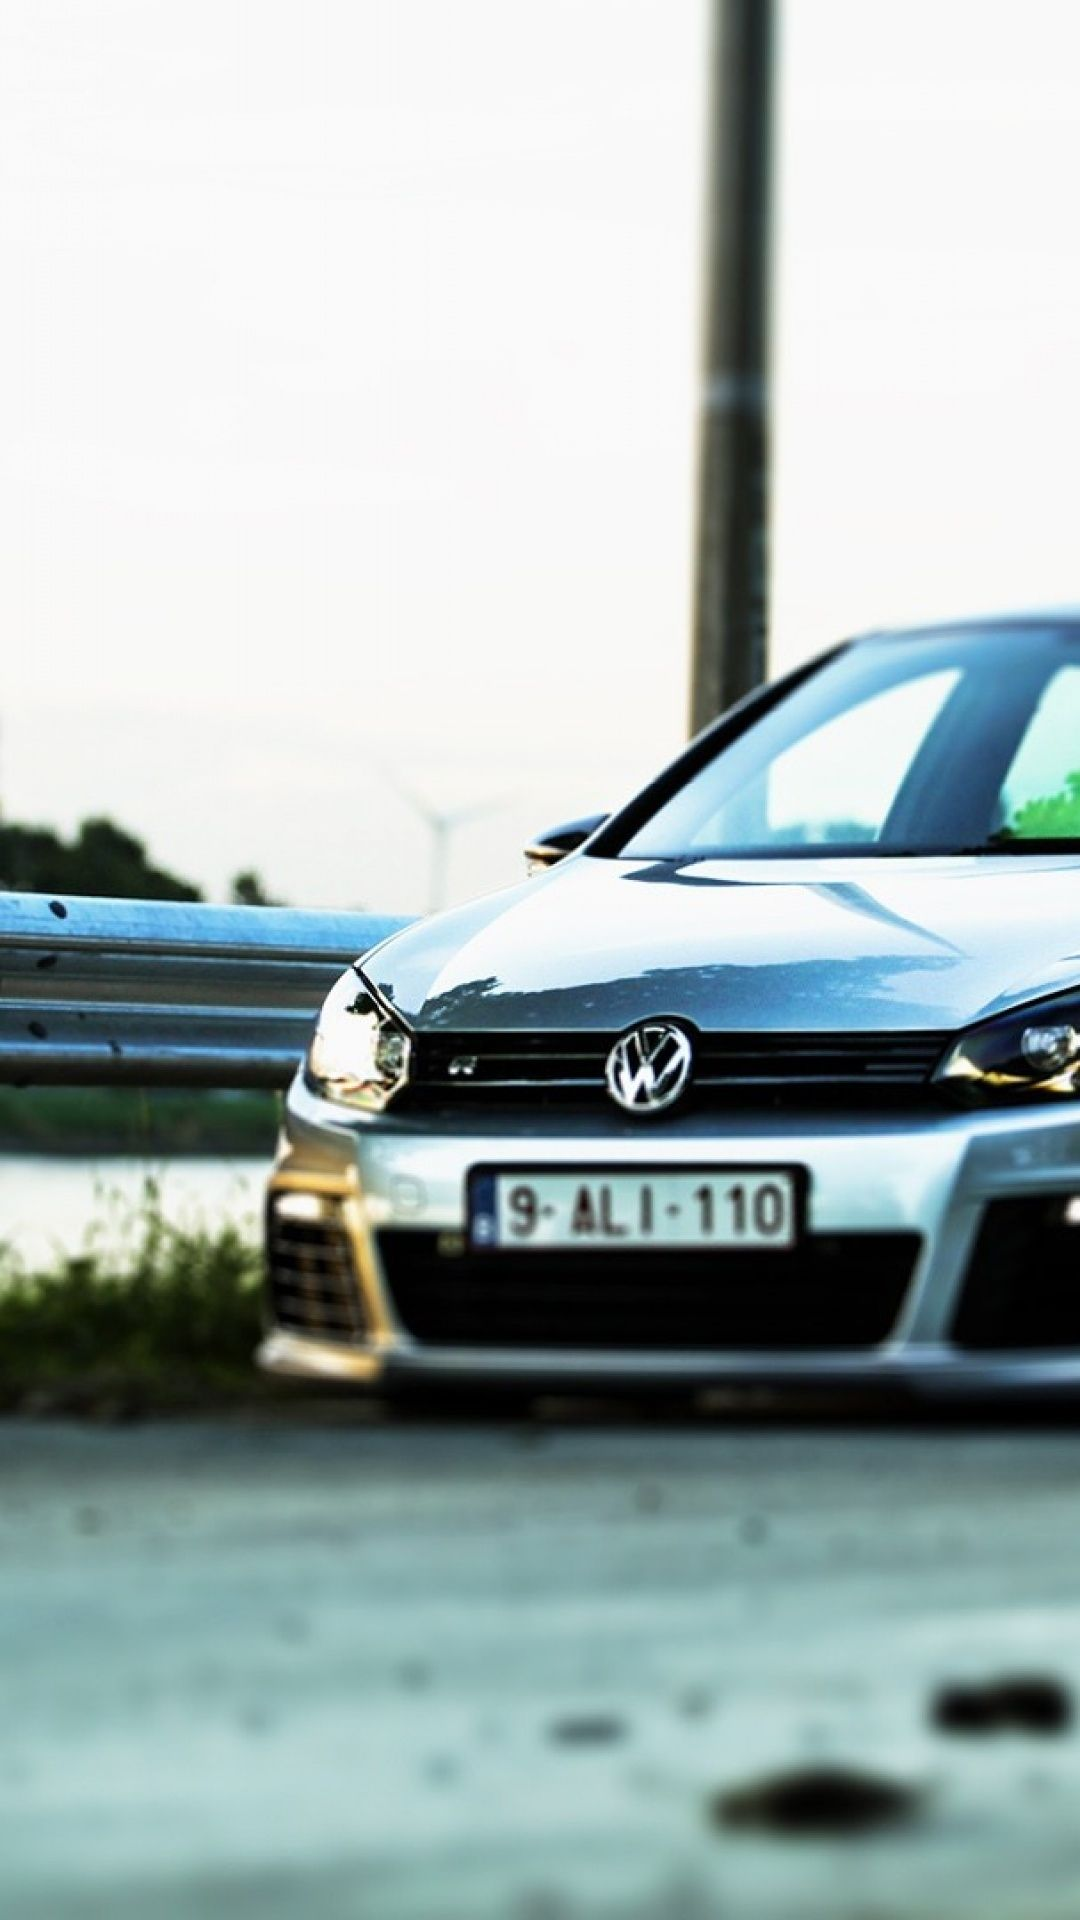 You Can Find Other Wallpaper For IPhone OnSport Categories Or Related Keywordvolkswagen Golf Iphone 5 Vw